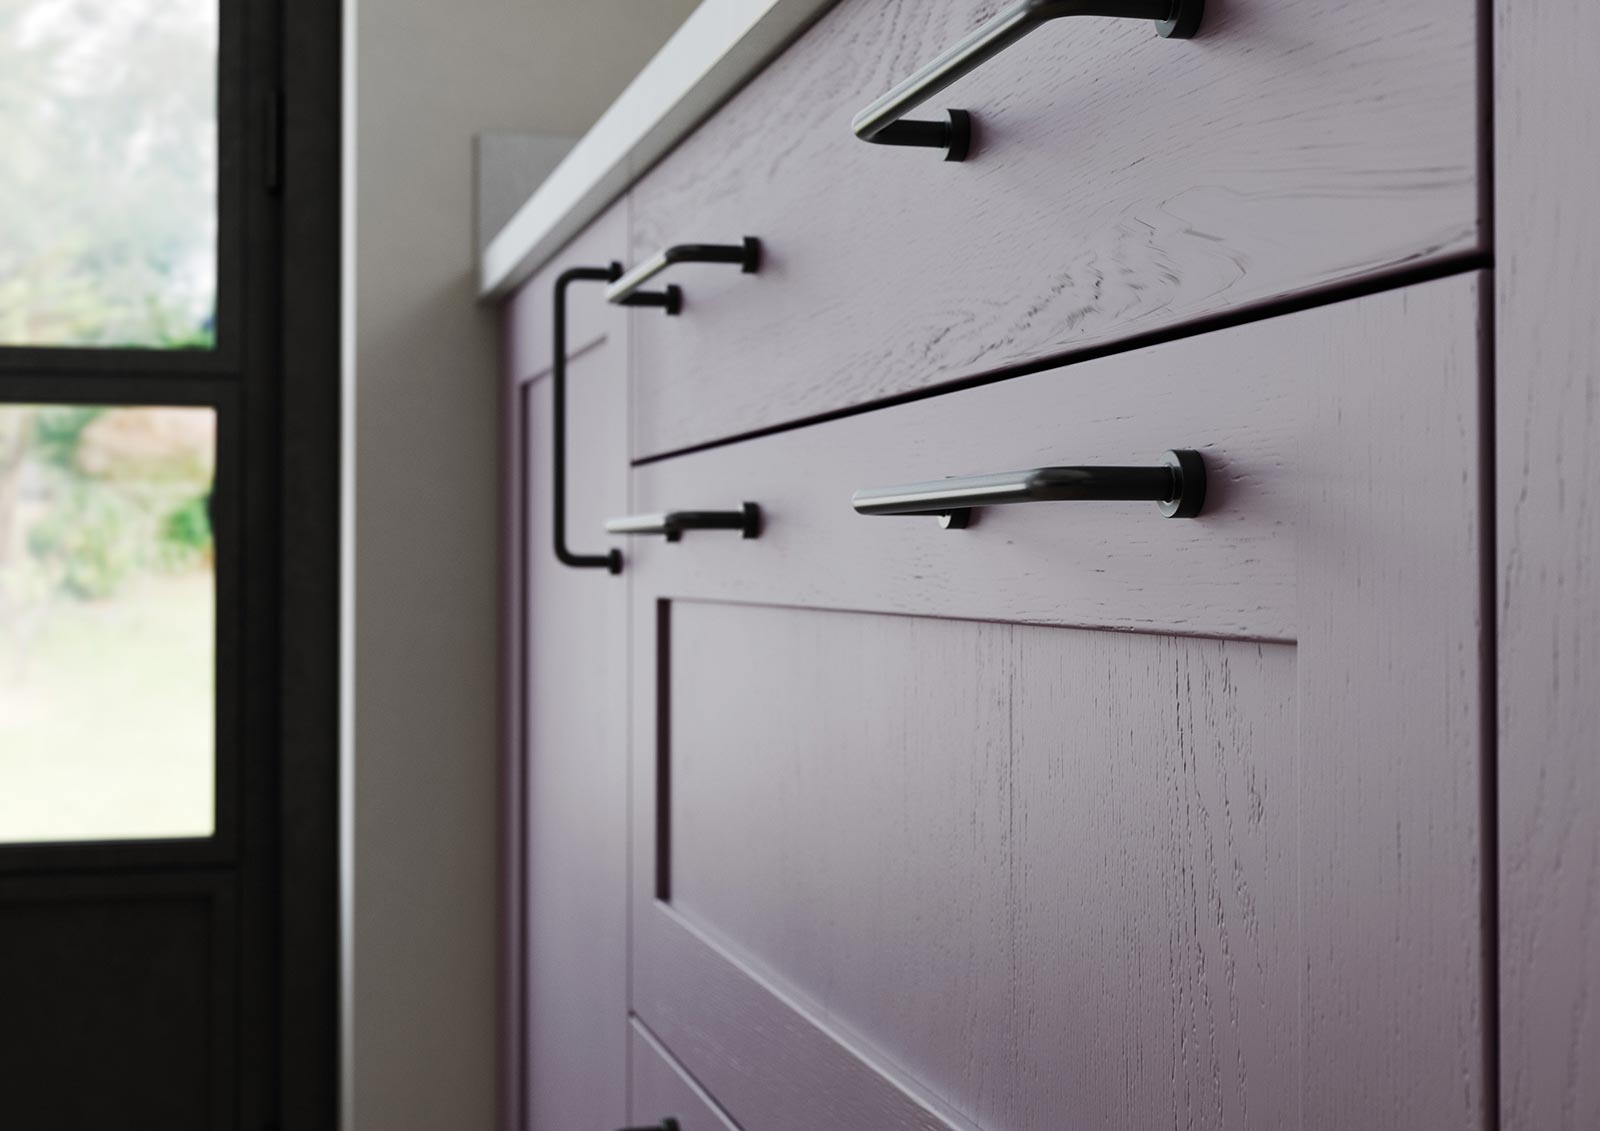 Contemporary skinny shaker door kitchen painted deep heather lavendar grey close-up